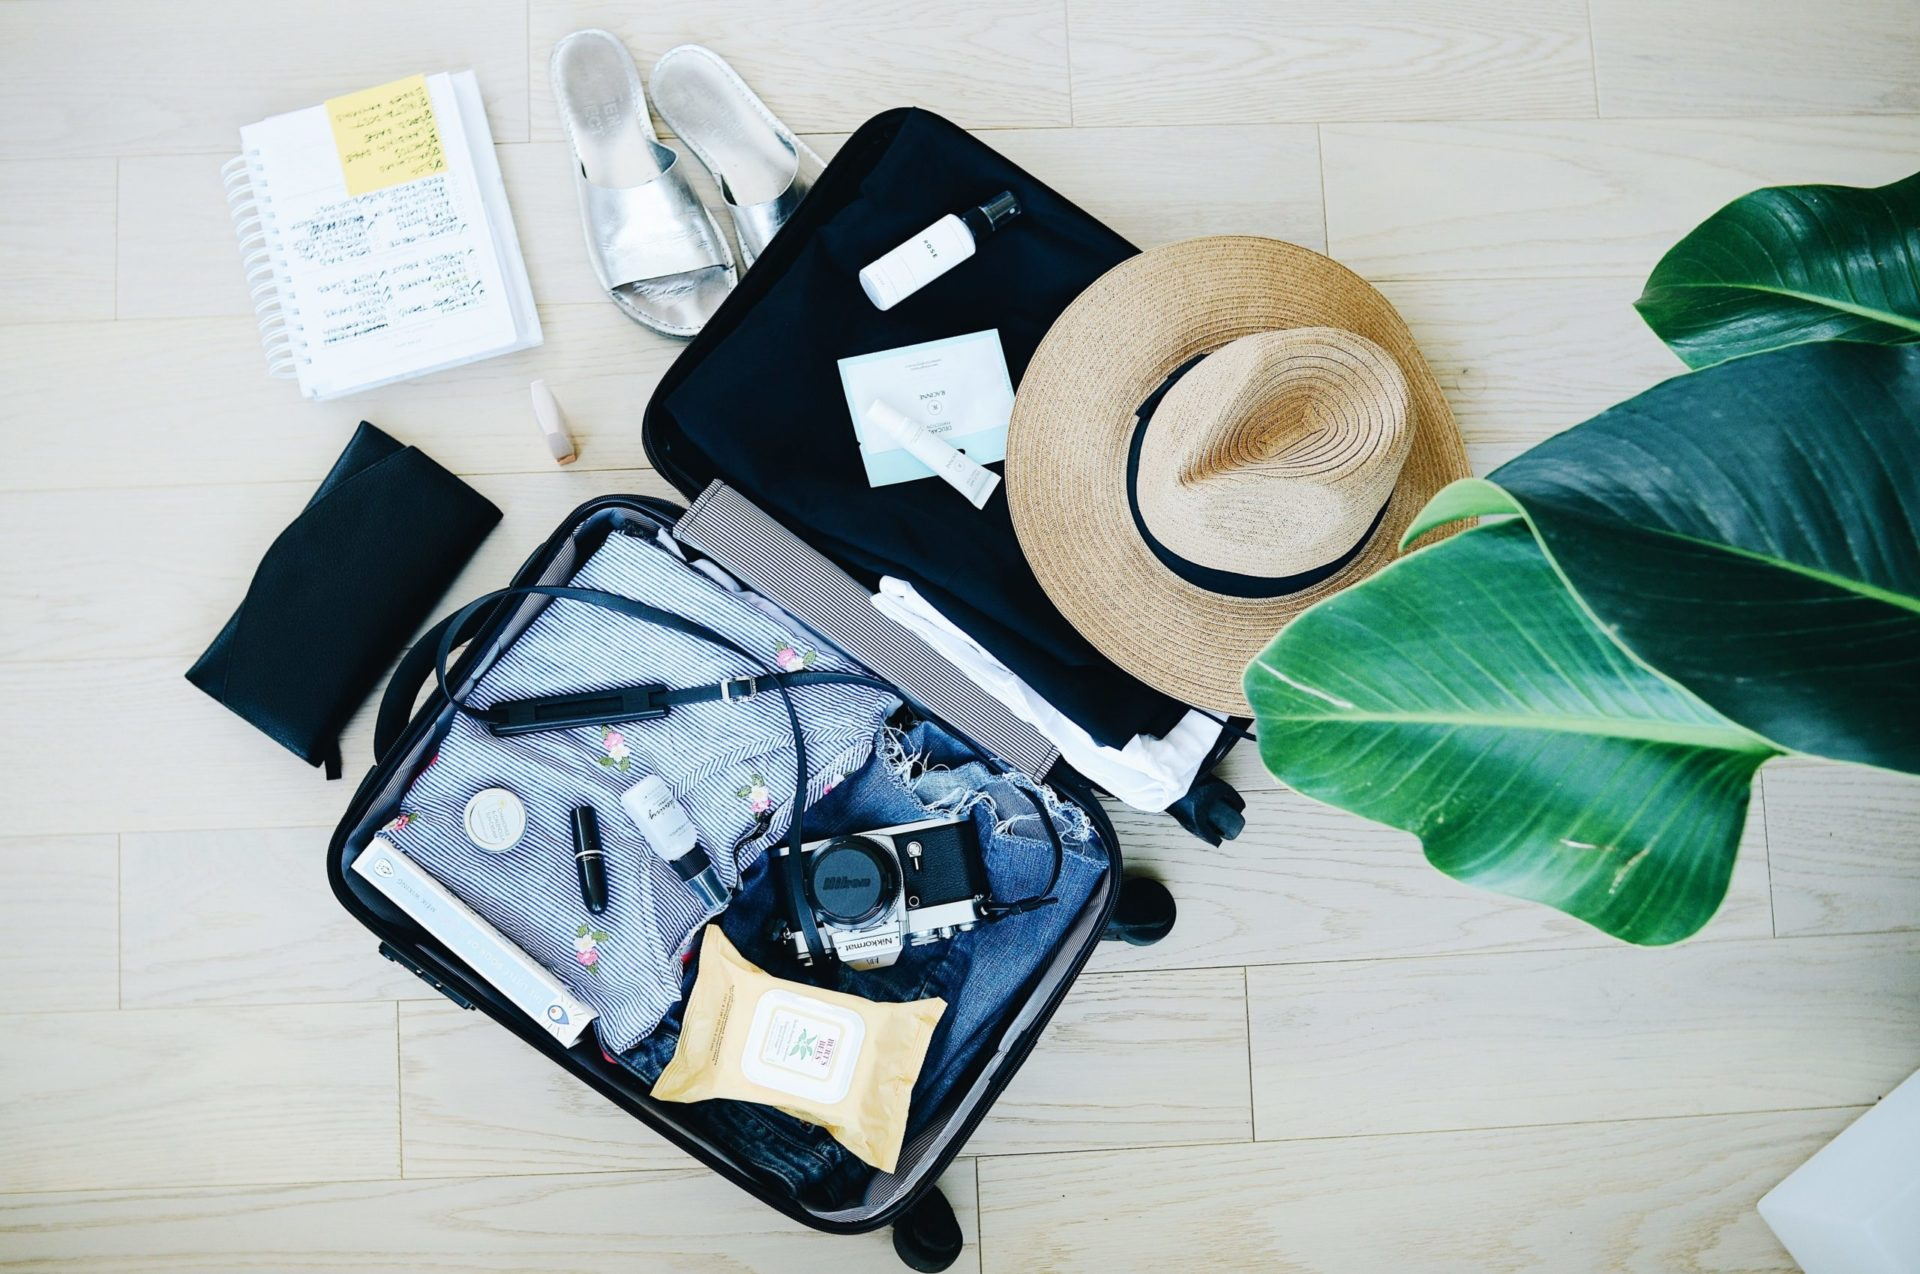 Packing for Vacation - Image of suitcase